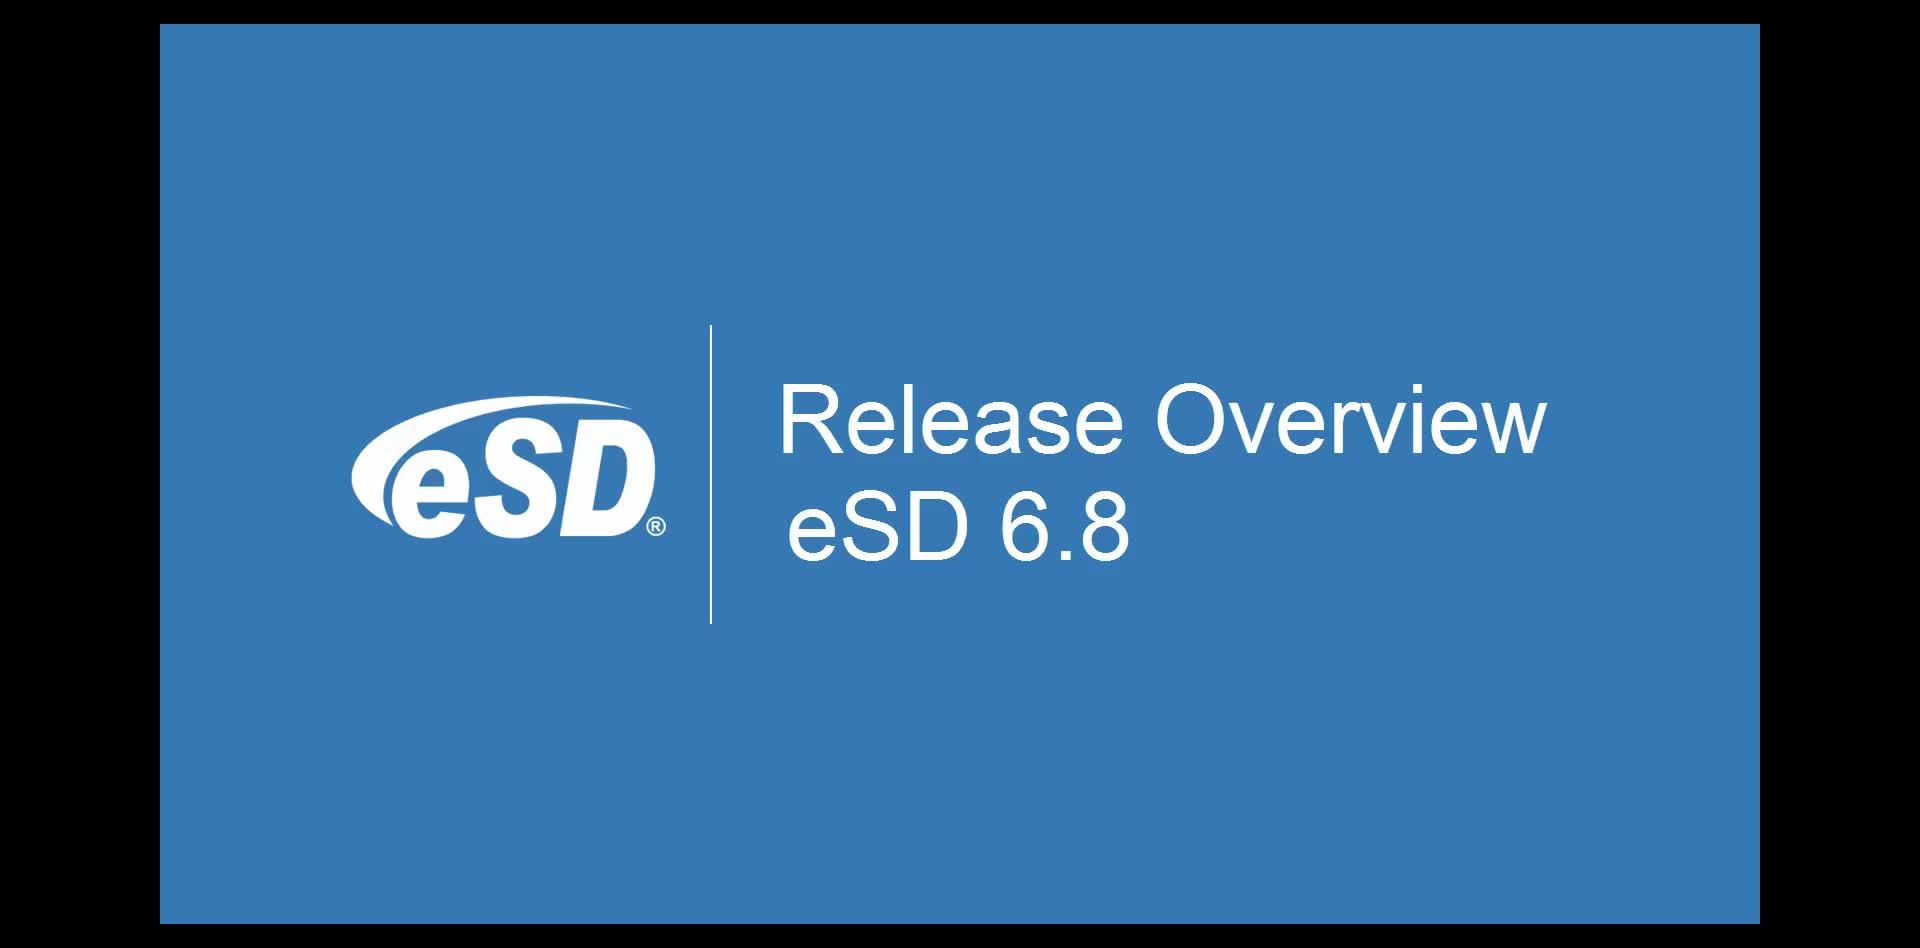 eSD 6.8 Release Overview